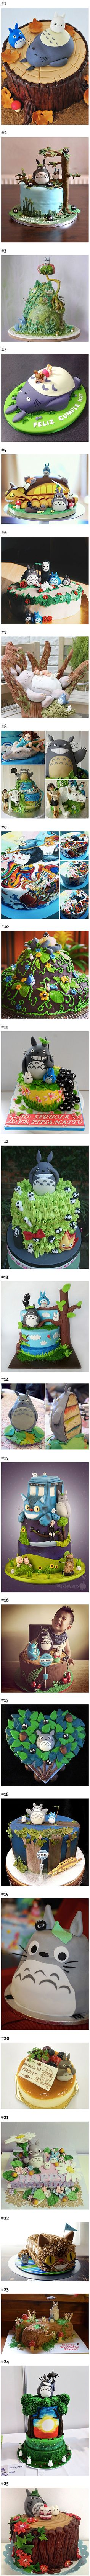 Totoro, everyone's favorite big, loveable forest spirit, is one of the best (and tastiest) ways to decorate a cake for any occasion – especially a birthday! This Japanese animated classic by Studio Ghibli reminds us to nurture our inner child, and there's no better way to do that than with a big slice of Totoro cake! The movie's big, round characters and clear colors make them excellent subjects for creative cake makers.